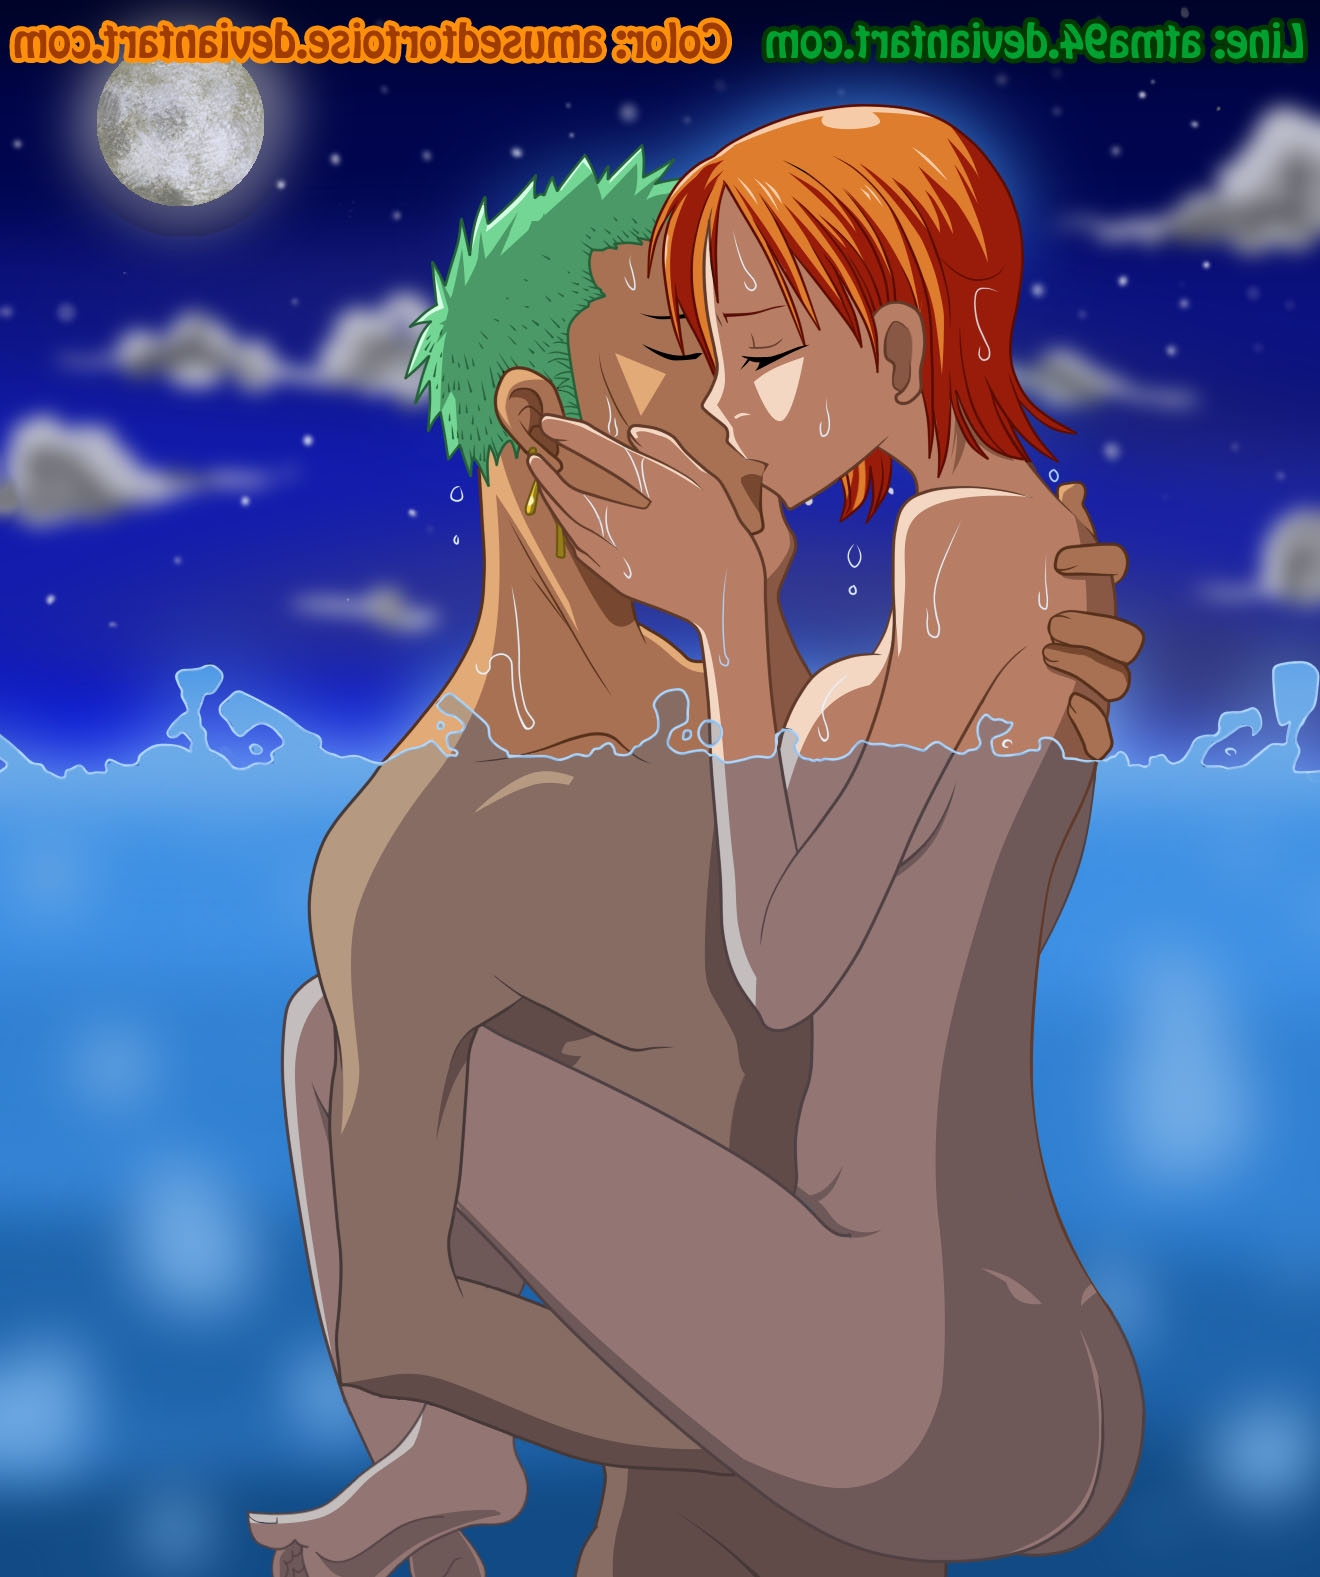 Toon sex pic ##0001301310100 amusedtortoise ass atma94 color female green hair hair human kissing male moon nami night nude one piece orange hair outdoors roronoa zoro side view straight water